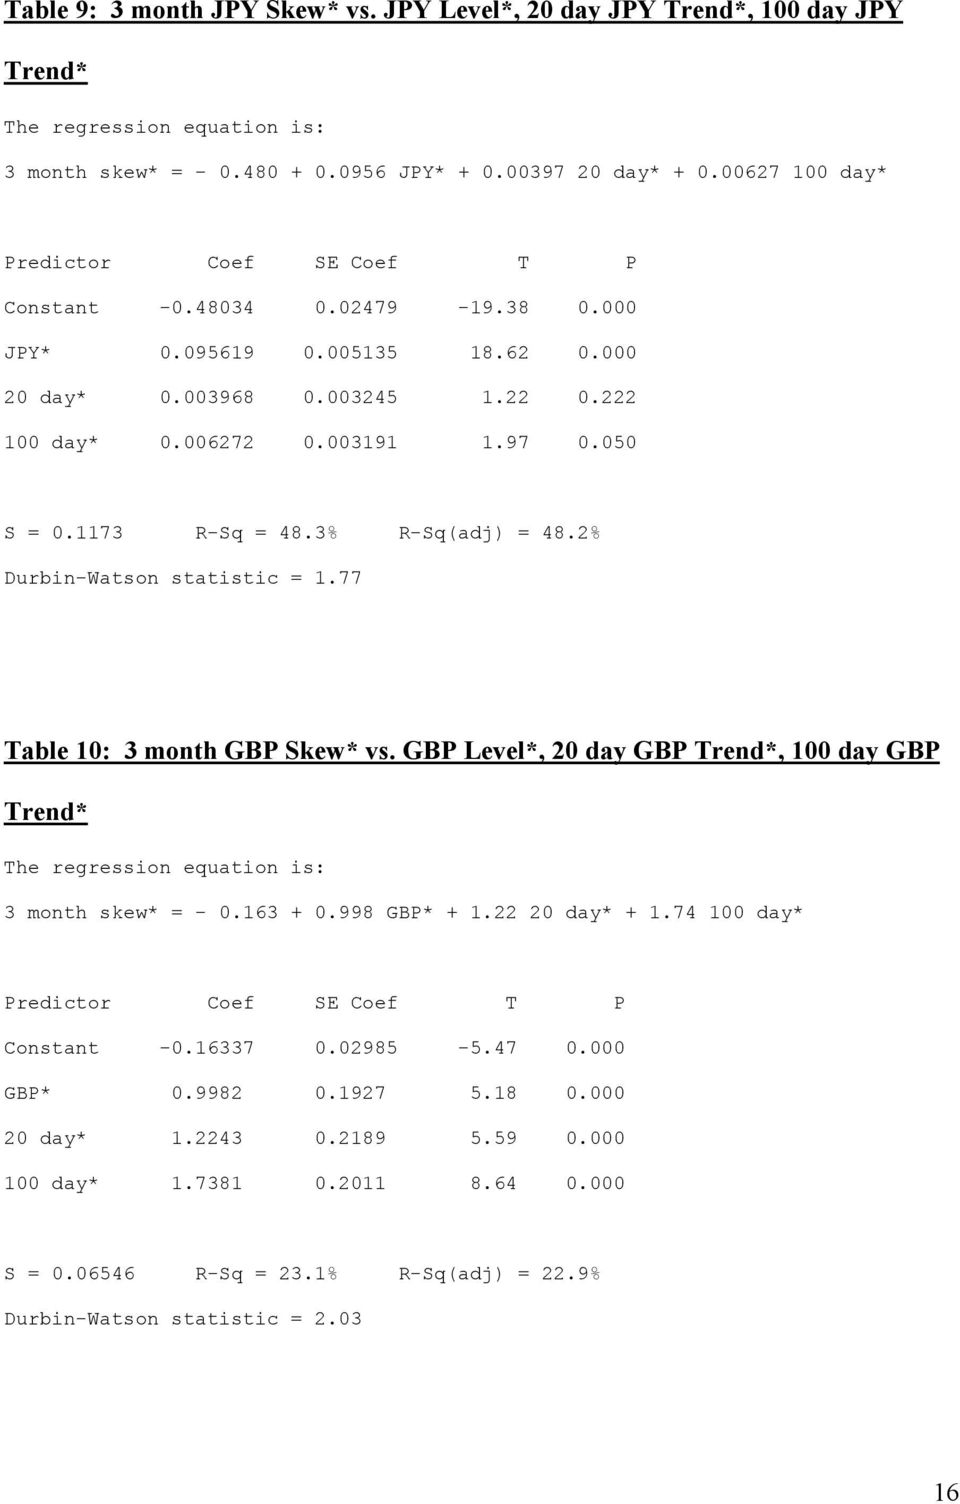 1173 R-Sq = 48.3% R-Sq(adj) = 48.2% Durbin-Watson statistic = 1.77 Table 10: 3 month GBP Skew* vs. GBP Level*, 20 day GBP Trend*, 100 day GBP Trend* The regression equation is: 3 month skew* = - 0.